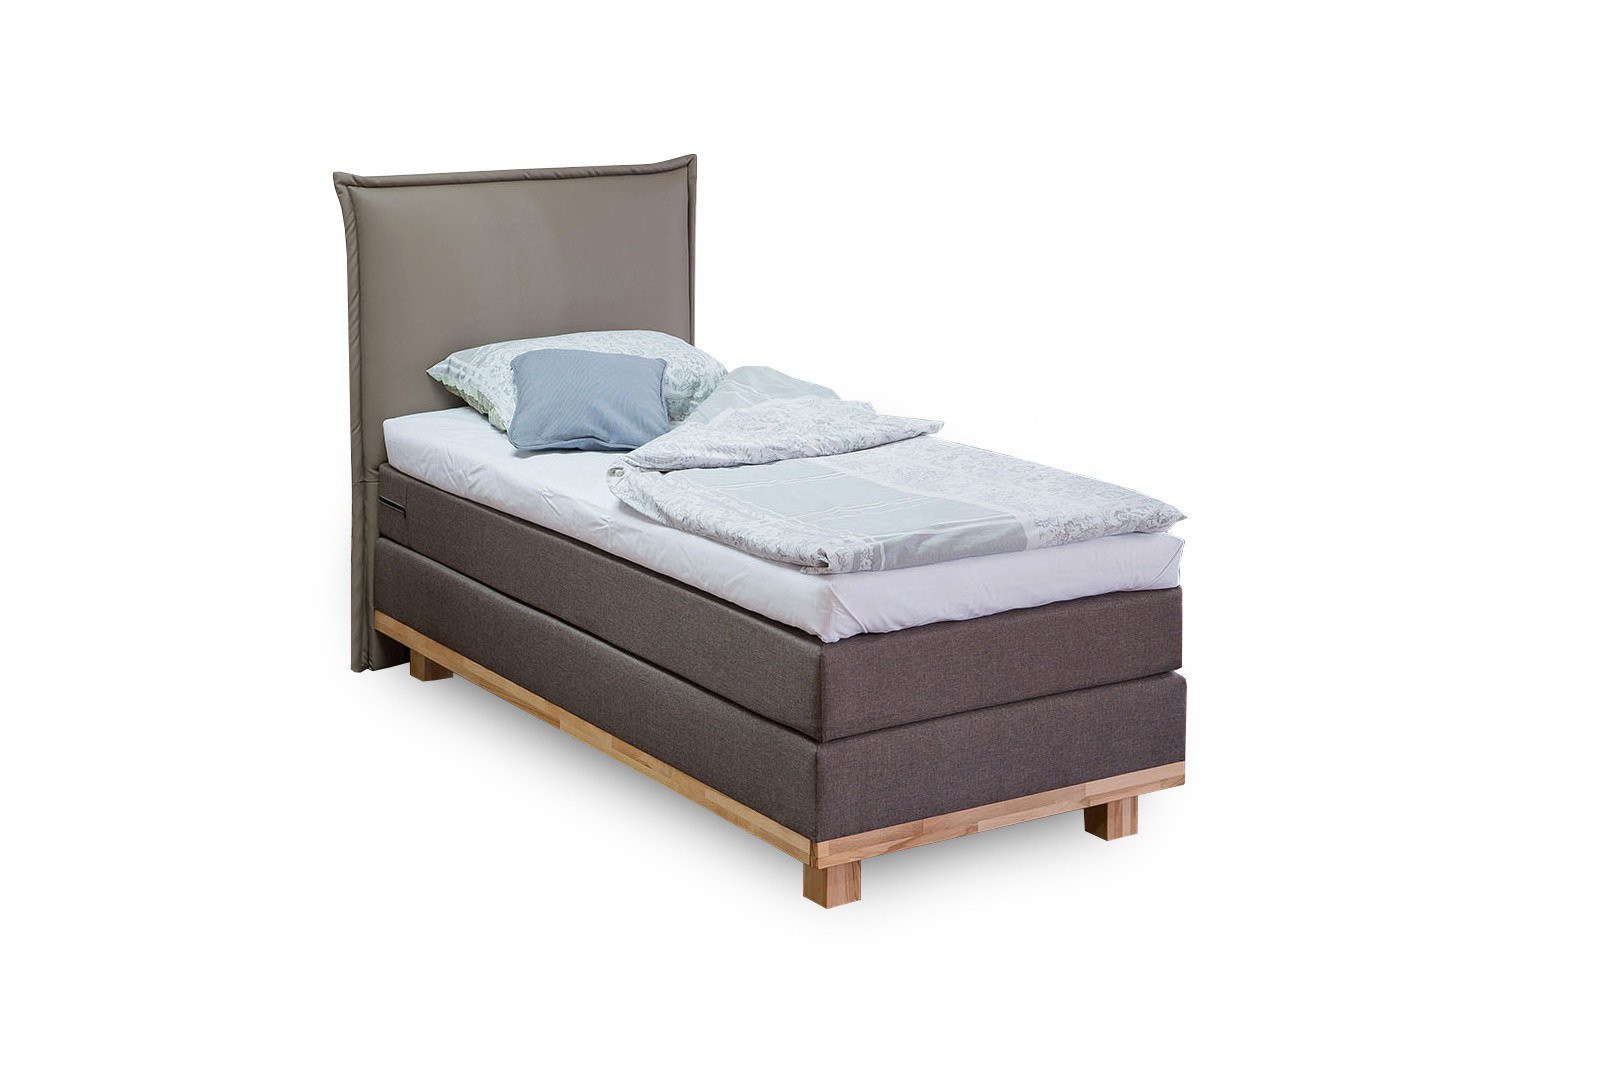 boxspringbett trendi von dico m bel in braun l m bel letz ihr online shop. Black Bedroom Furniture Sets. Home Design Ideas